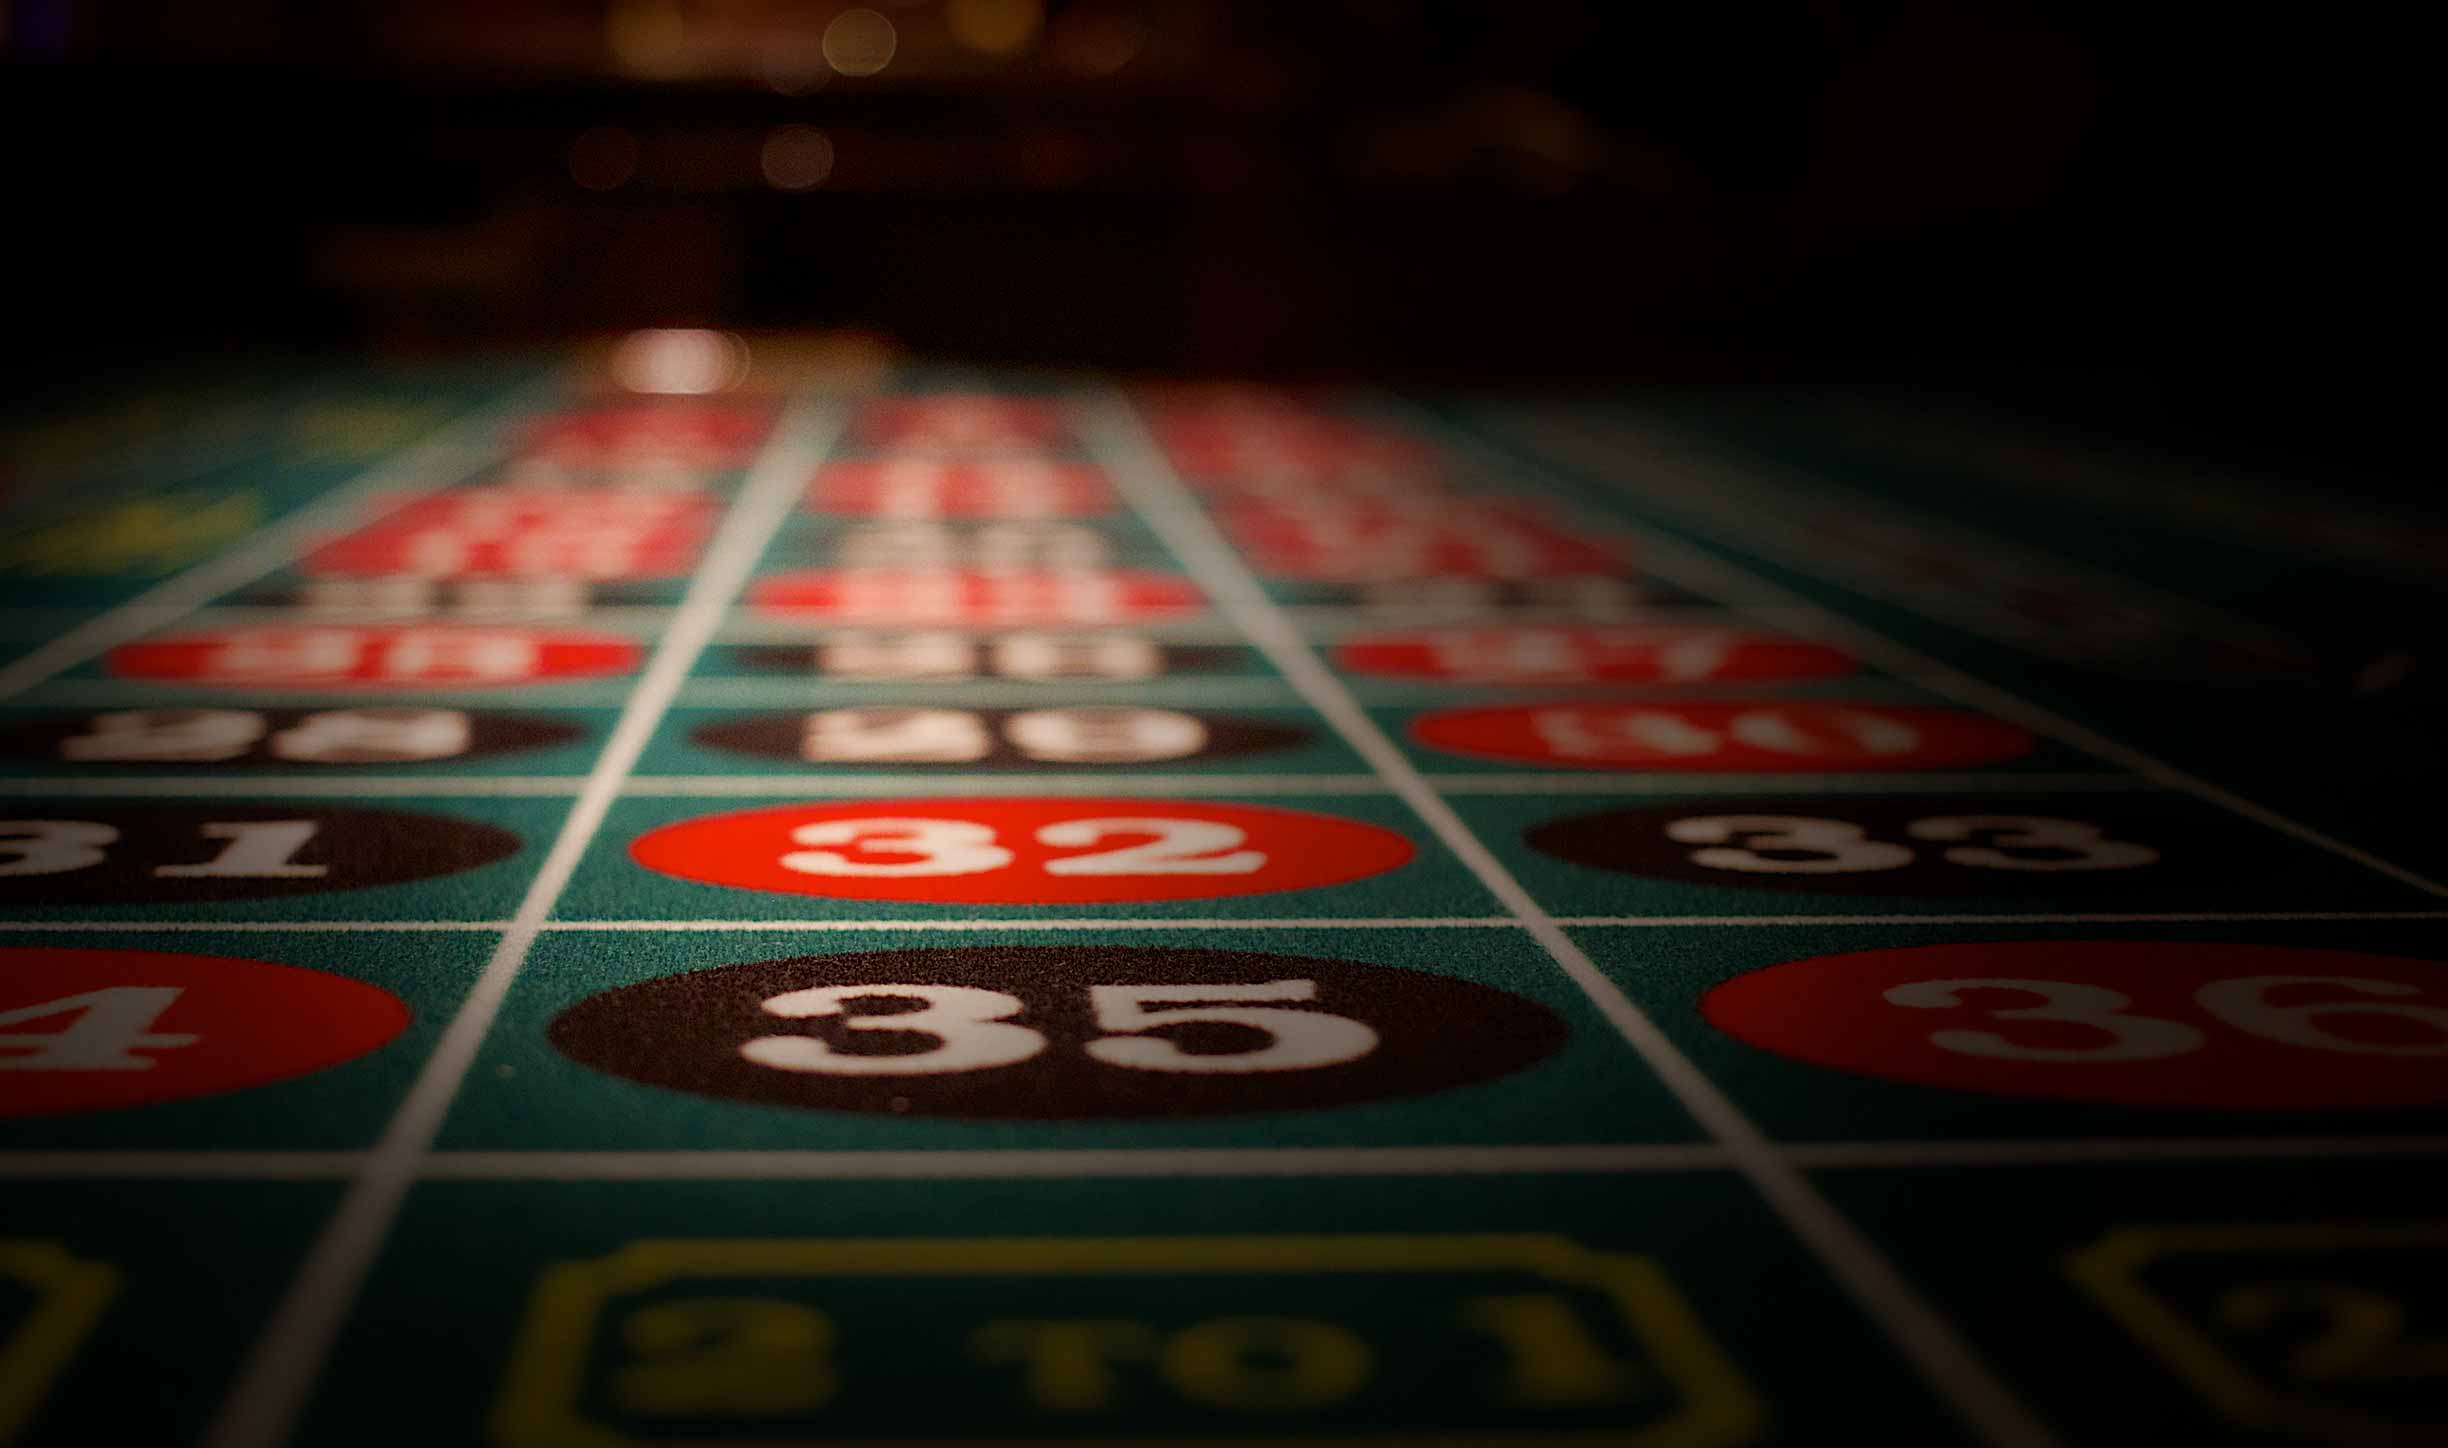 What is the best bet in roulette?